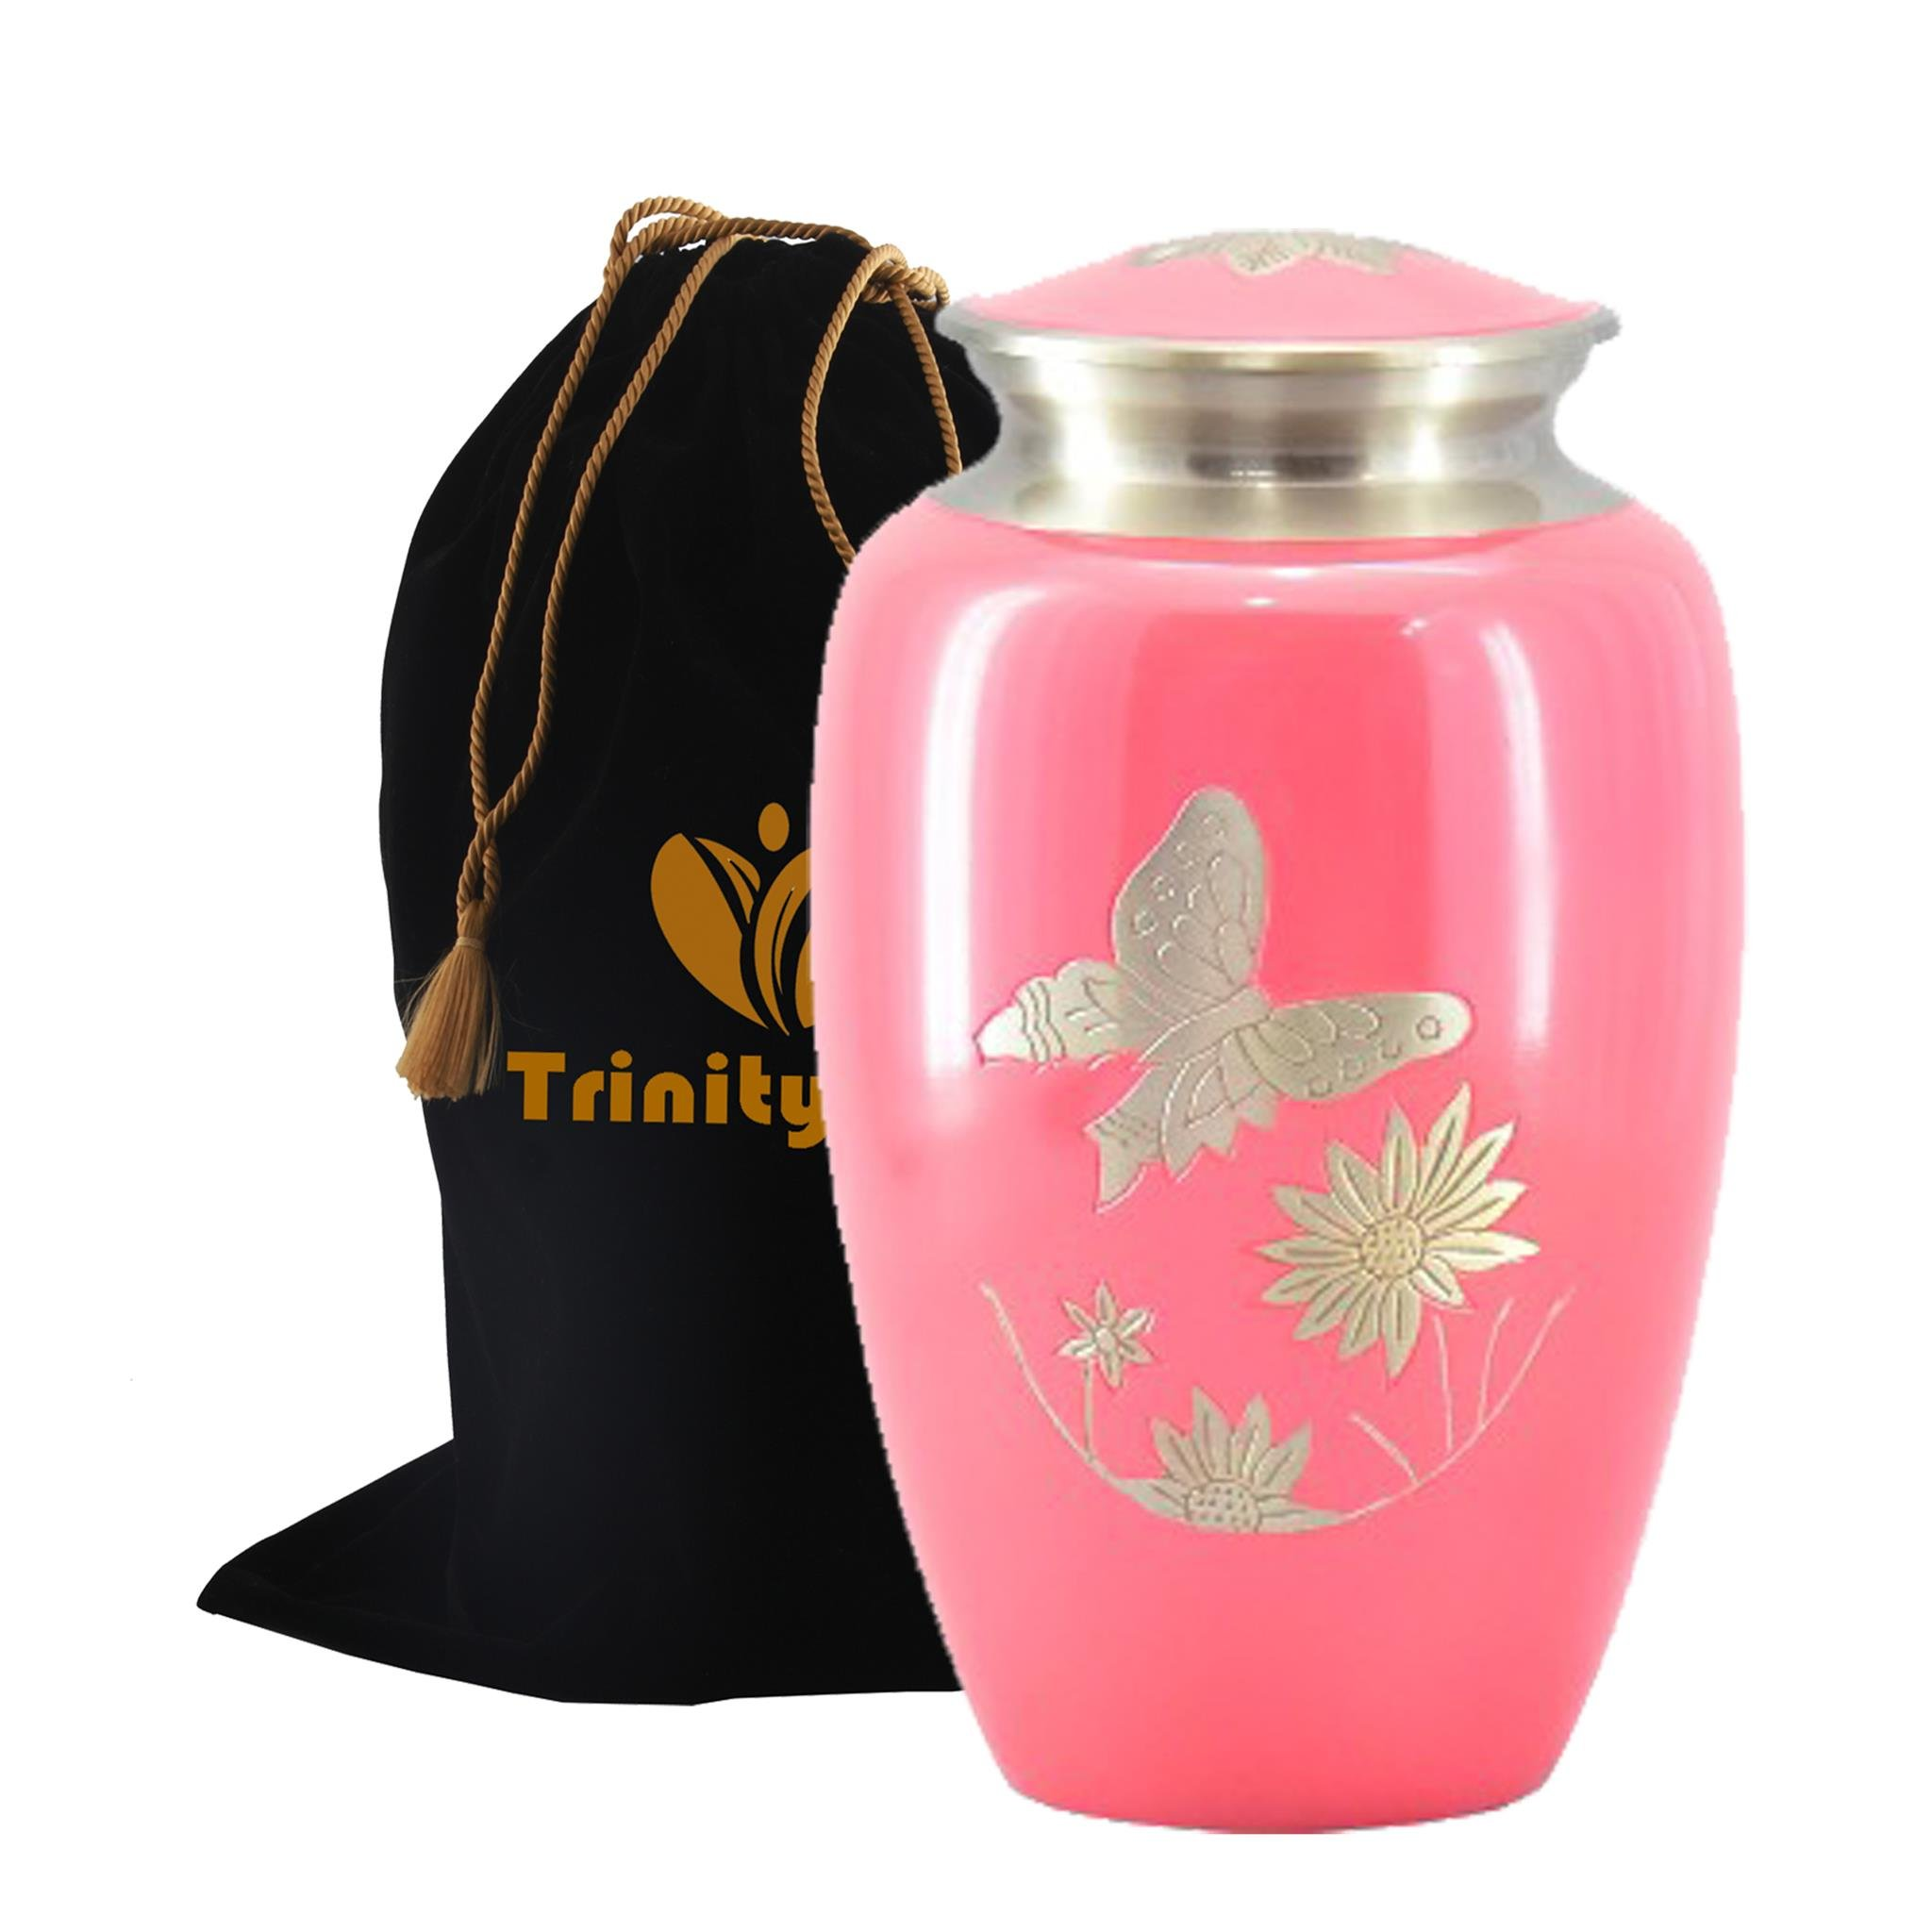 Pink Butterfly Garden Brass Cremation Urn - Beautifully Handcrafted Adult Funeral Urn - Solid Brass Funeral Urn - Affordable Urn for Human Ashes with Free Velvet Bag